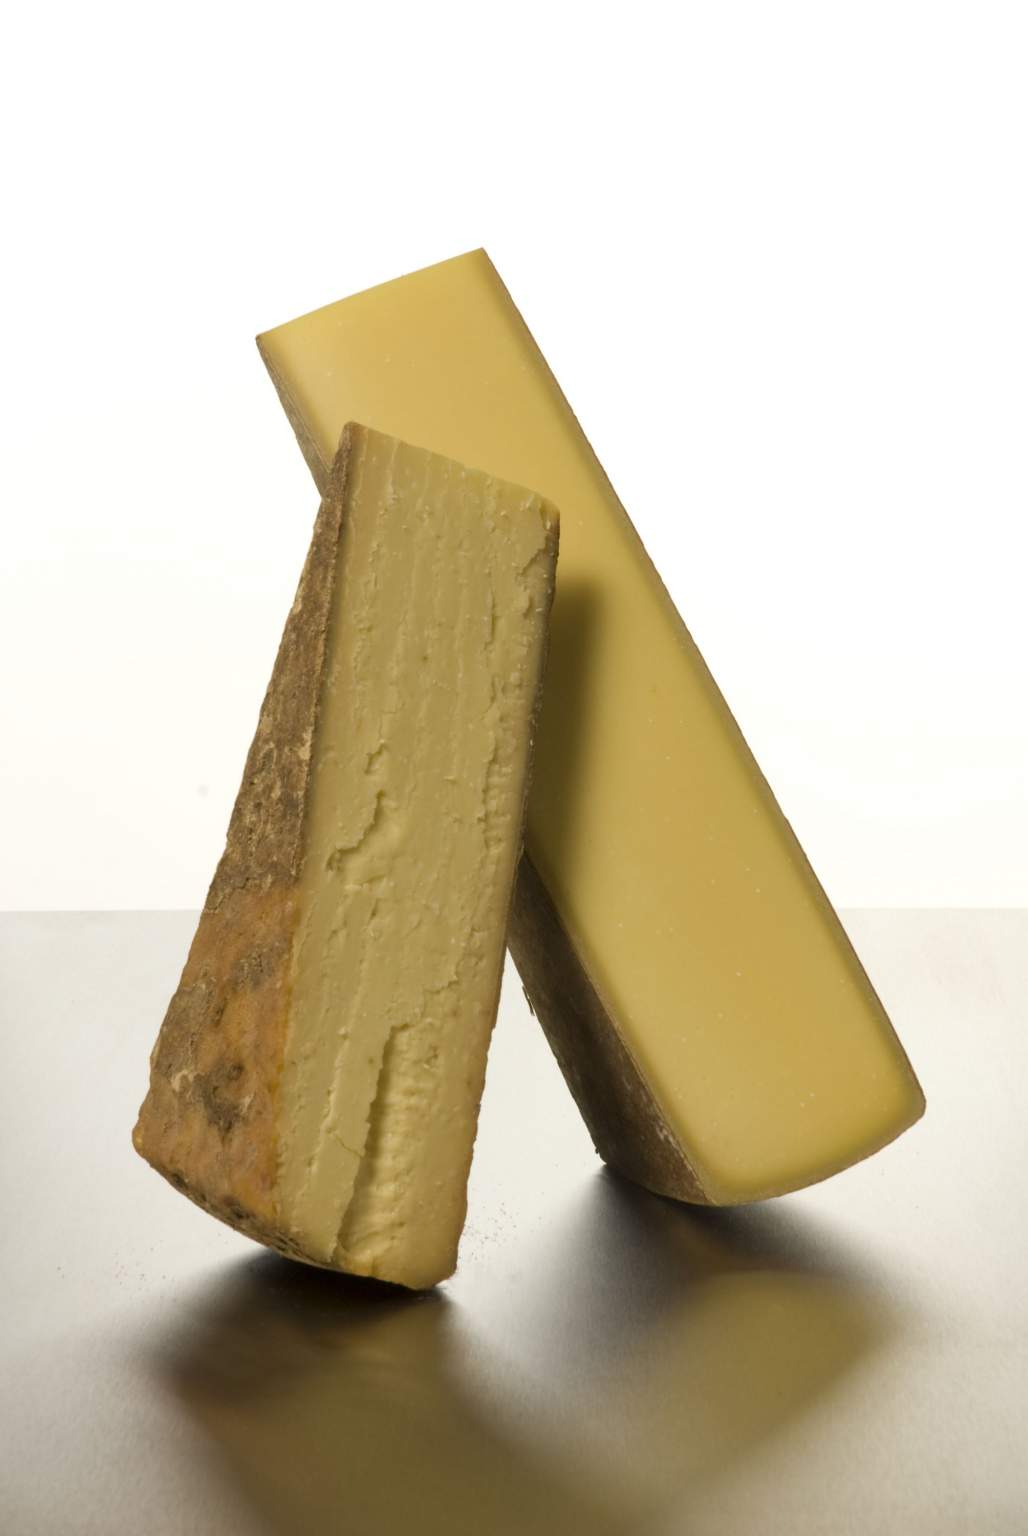 Les fromages rares.